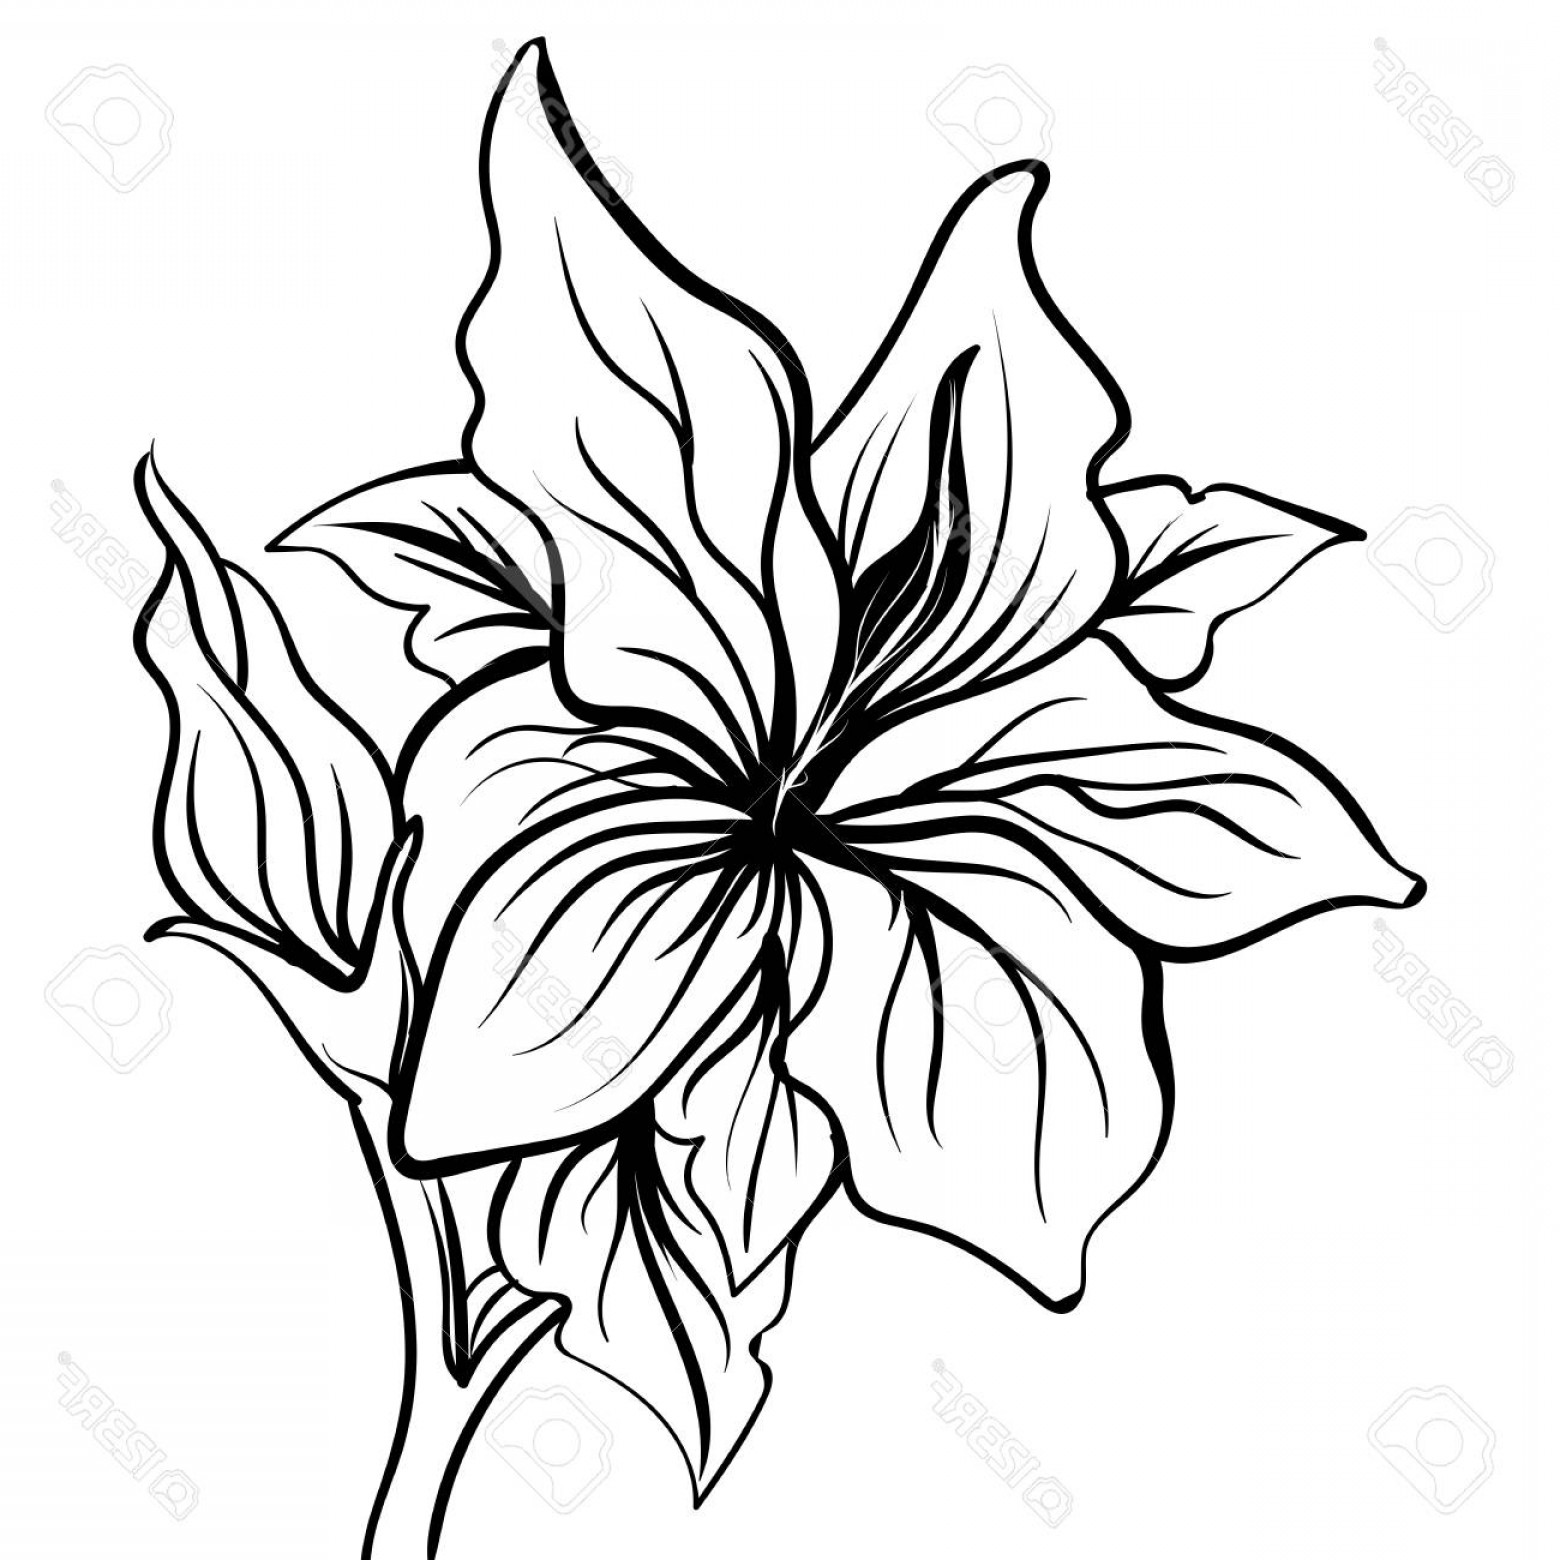 1560x1560 Photostock Vector Lily Sketch Drawing Of A Flower Lily Flower Hand